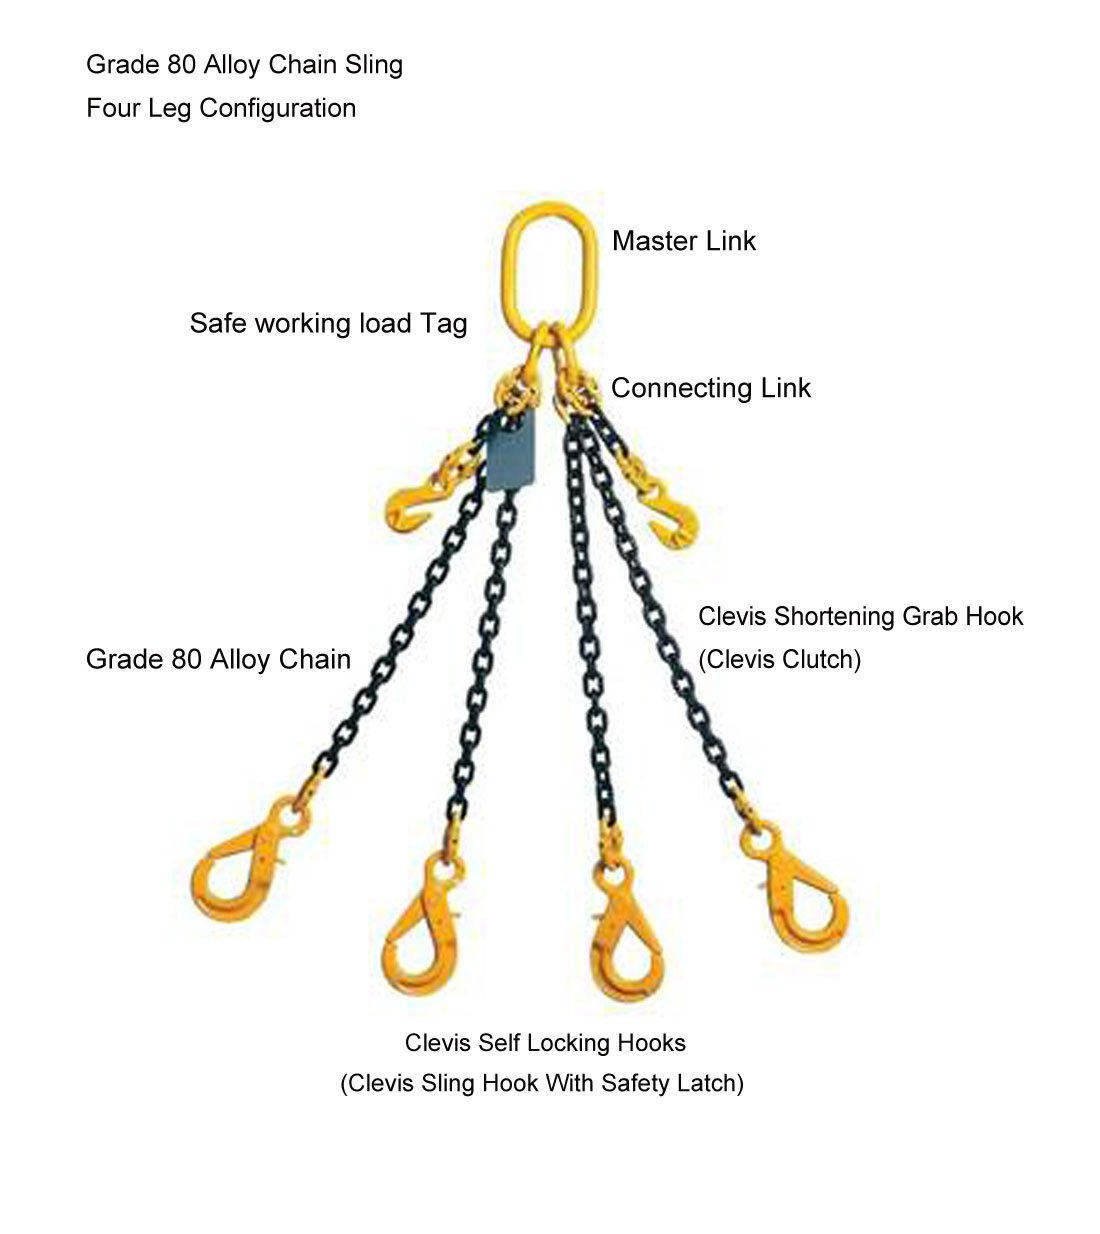 8mm, 4 leg lifting chain 4m with shortening grab hooks and clevis self-locking hooks The Ratchet Shop